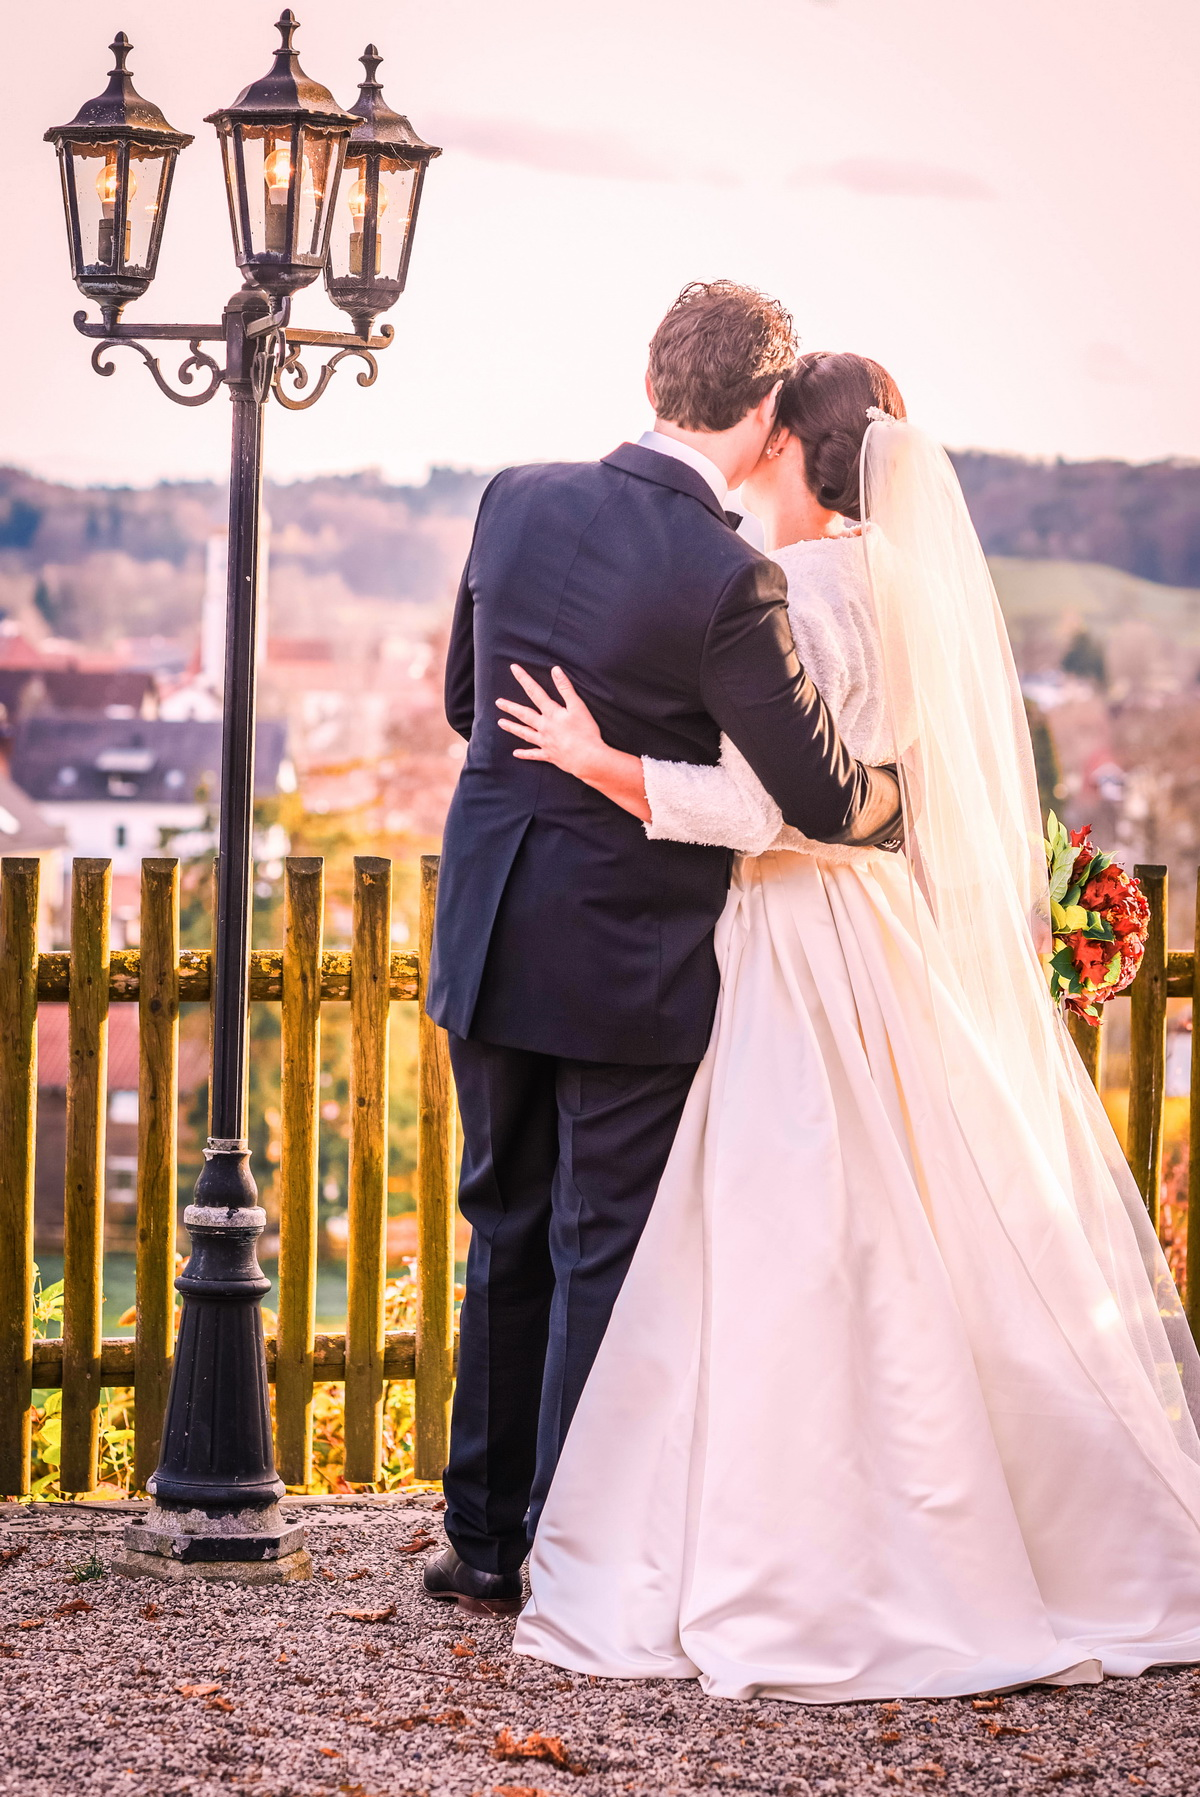 Wedding - Hochzeit - Claudia Sittig Photography - 065